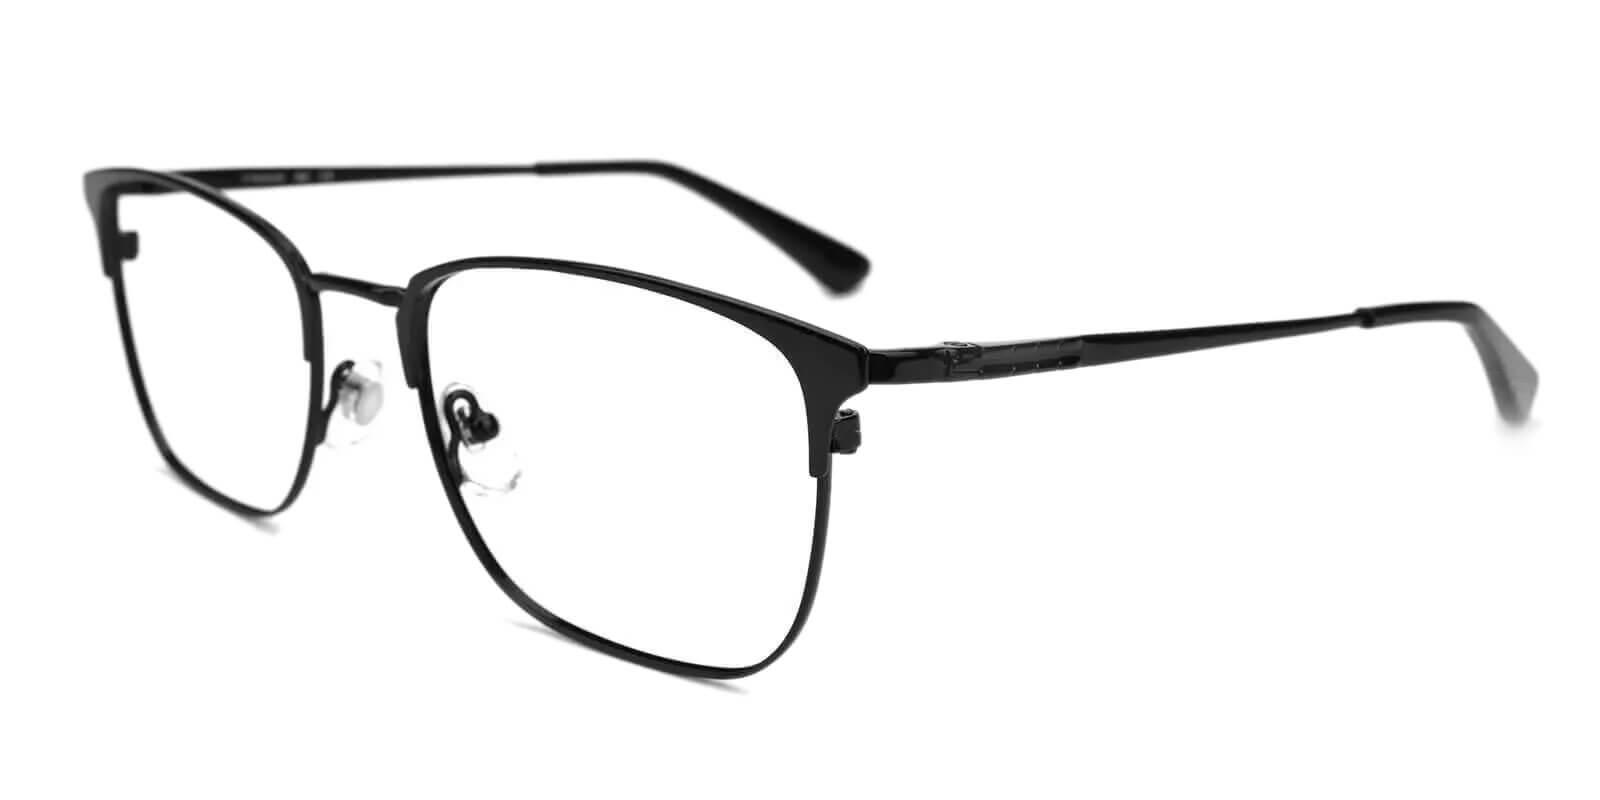 Nathan Black Titanium NosePads , Eyeglasses , Lightweight Frames from ABBE Glasses